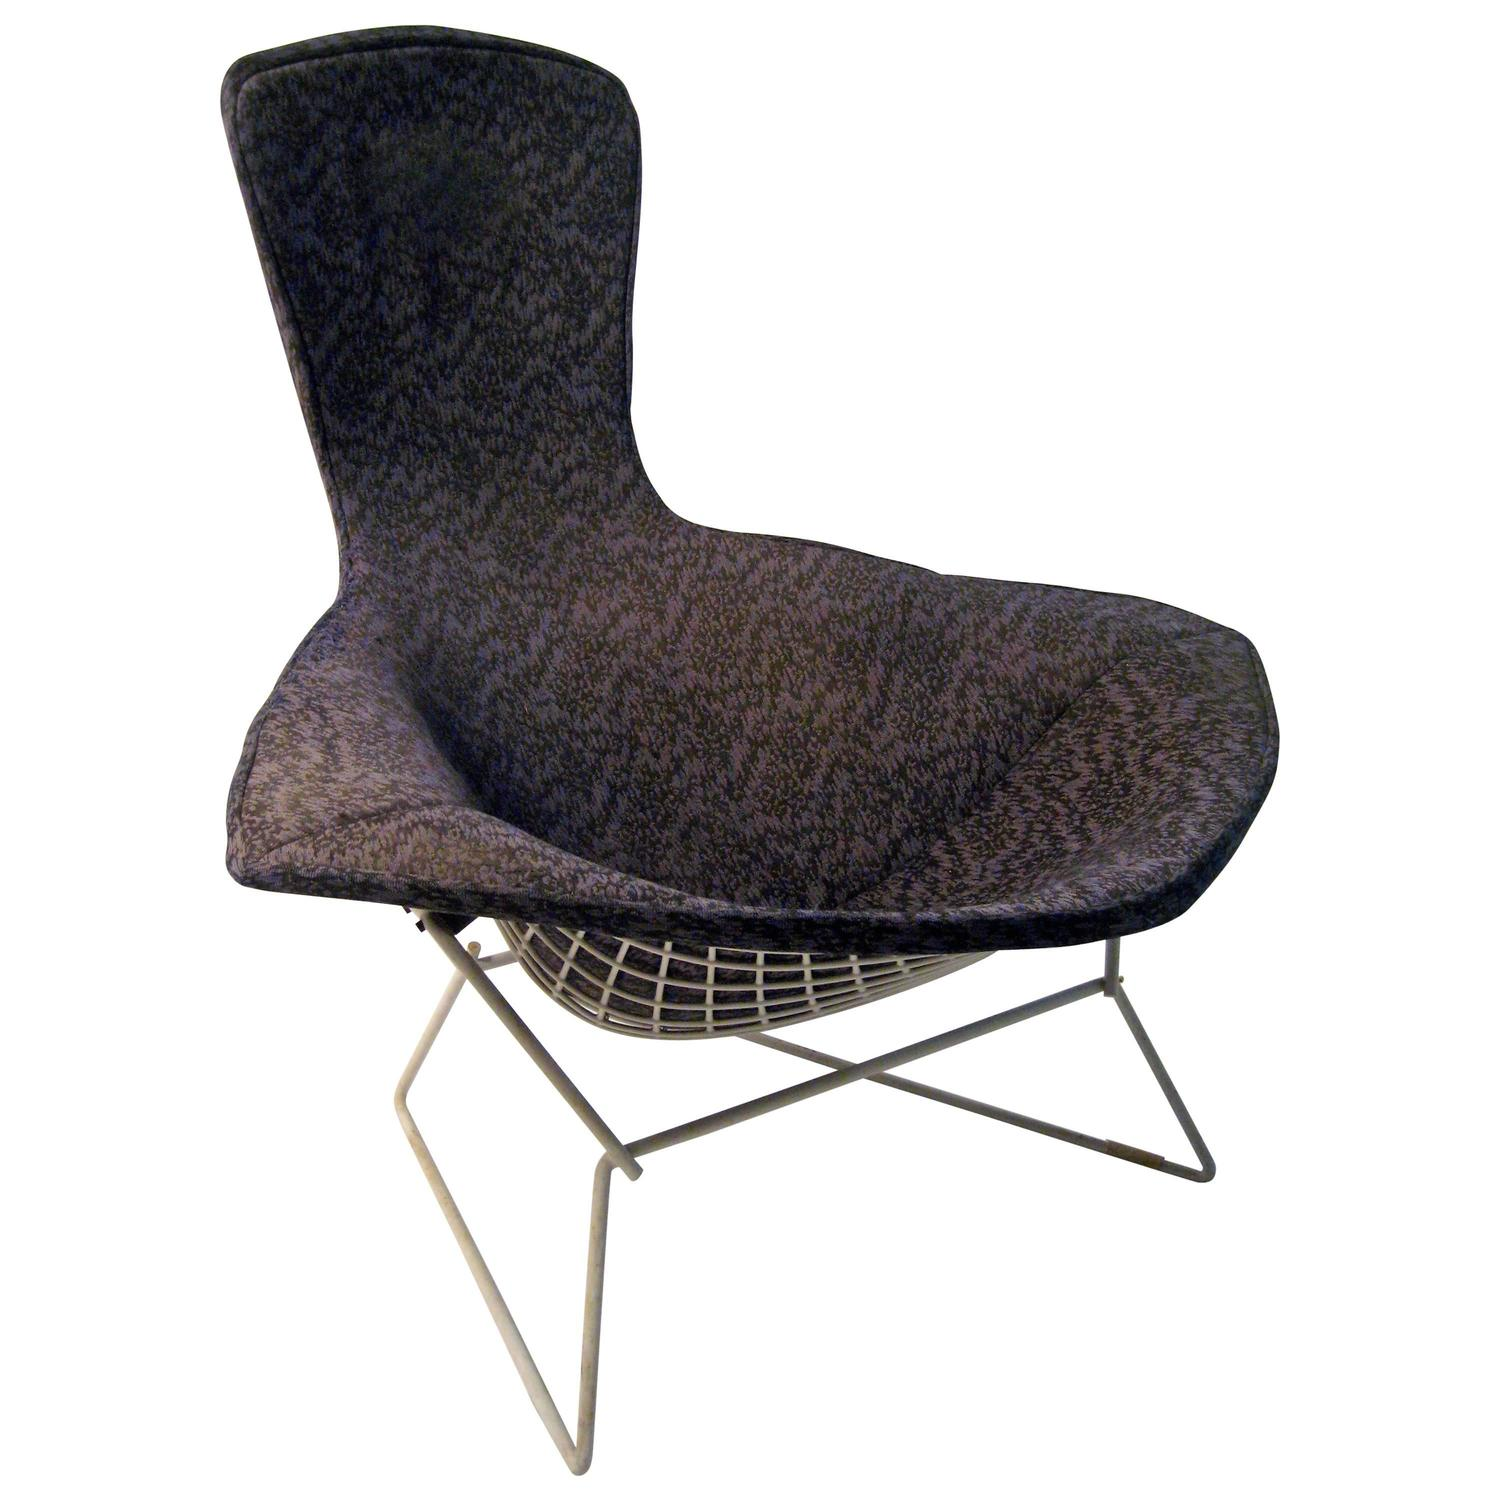 Bertoia Chairs Harry Bertoia Bird Chair For Sale At 1stdibs